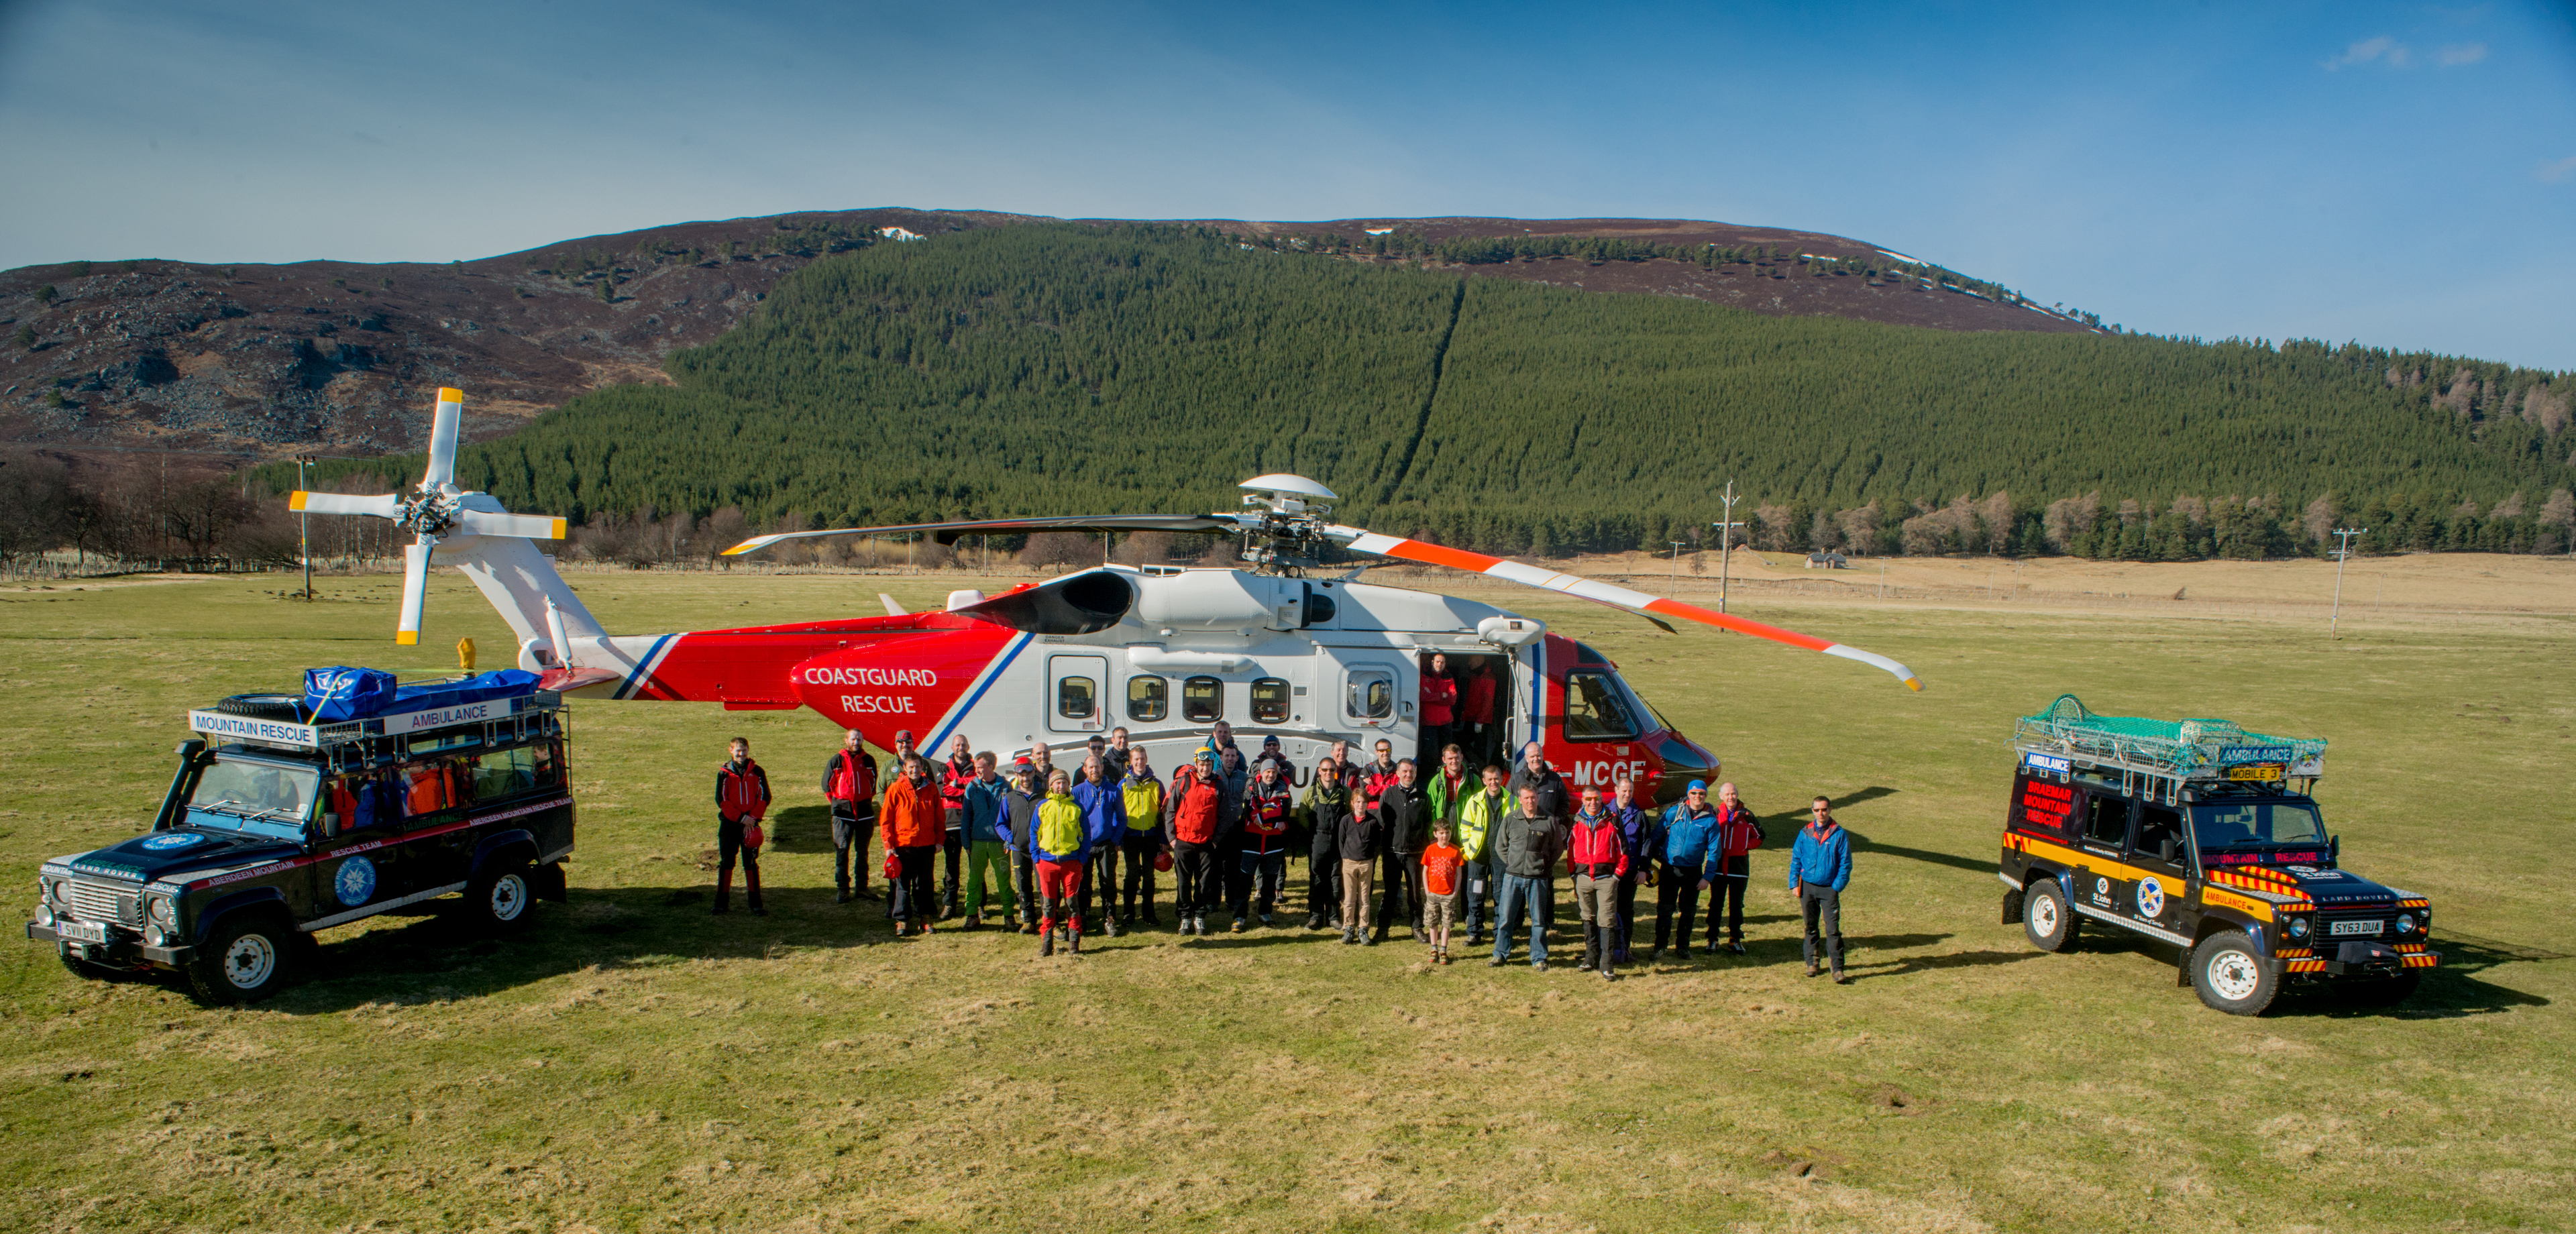 Teams trained with the new Bristow helicopter